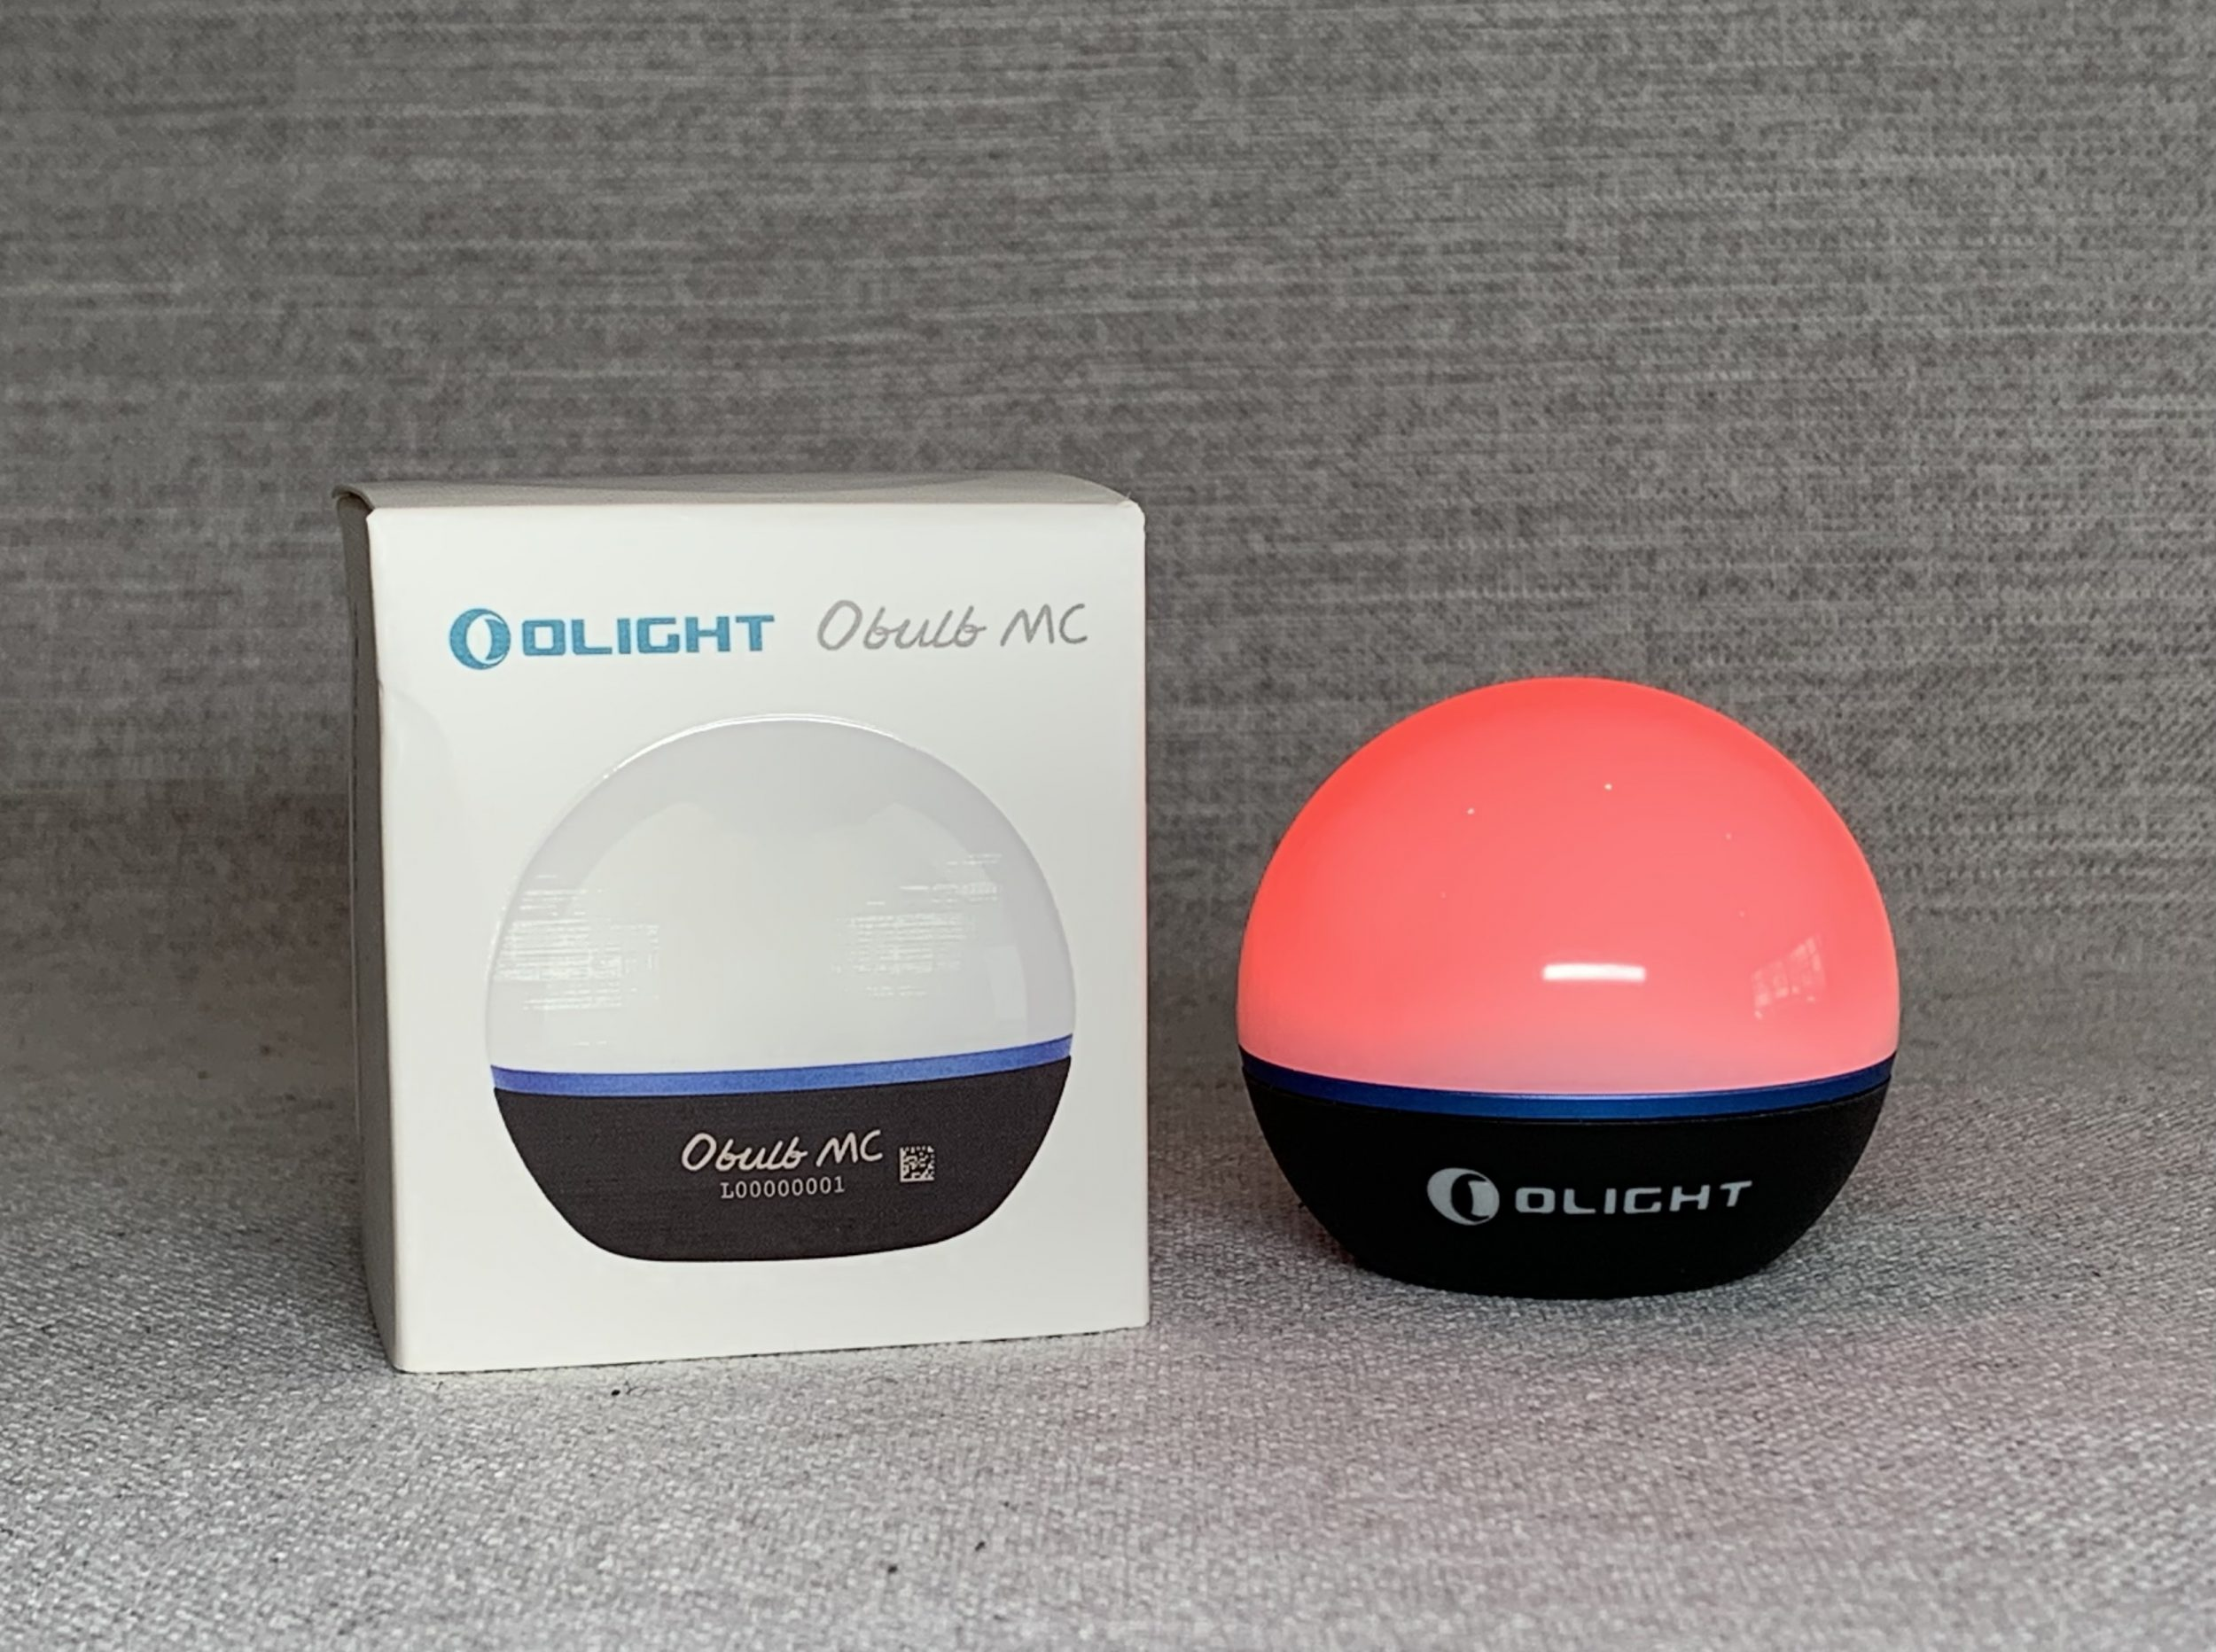 Read more about the article The Obulb MC Bulb Light from Olight